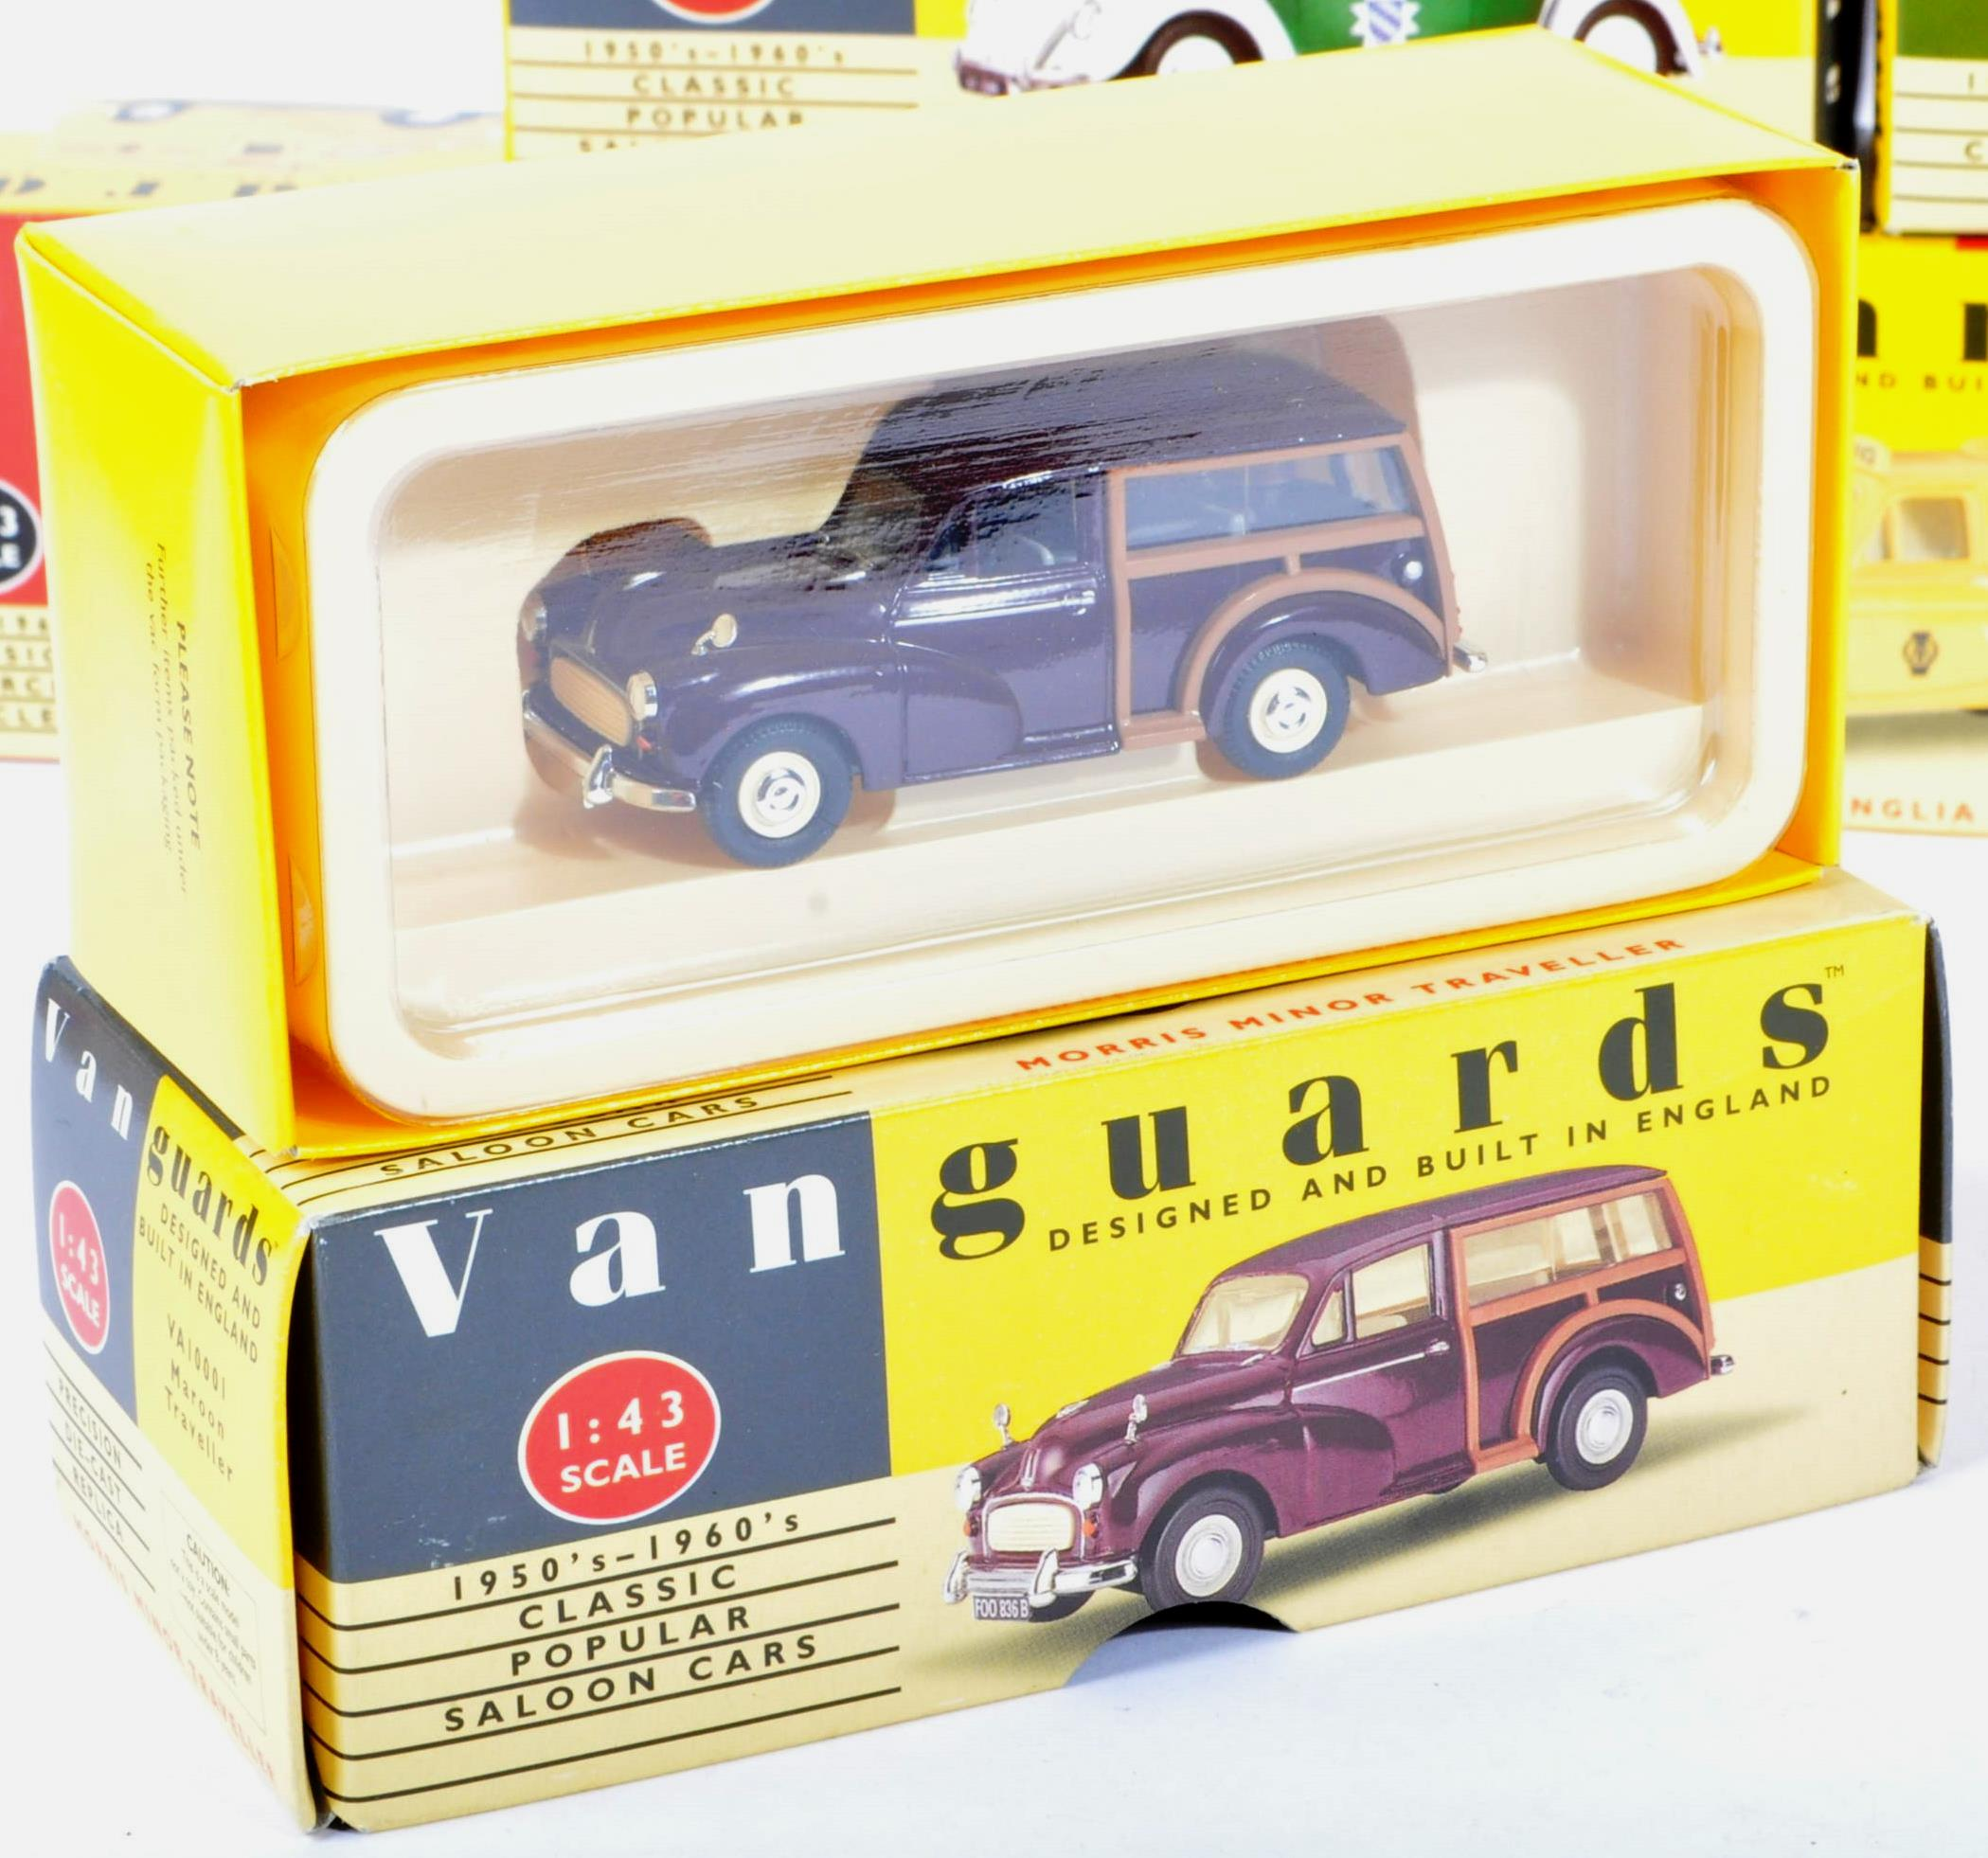 COLLECTION OF X10 LLEDO VANGUARDS DIECAST MODELS - Image 4 of 5